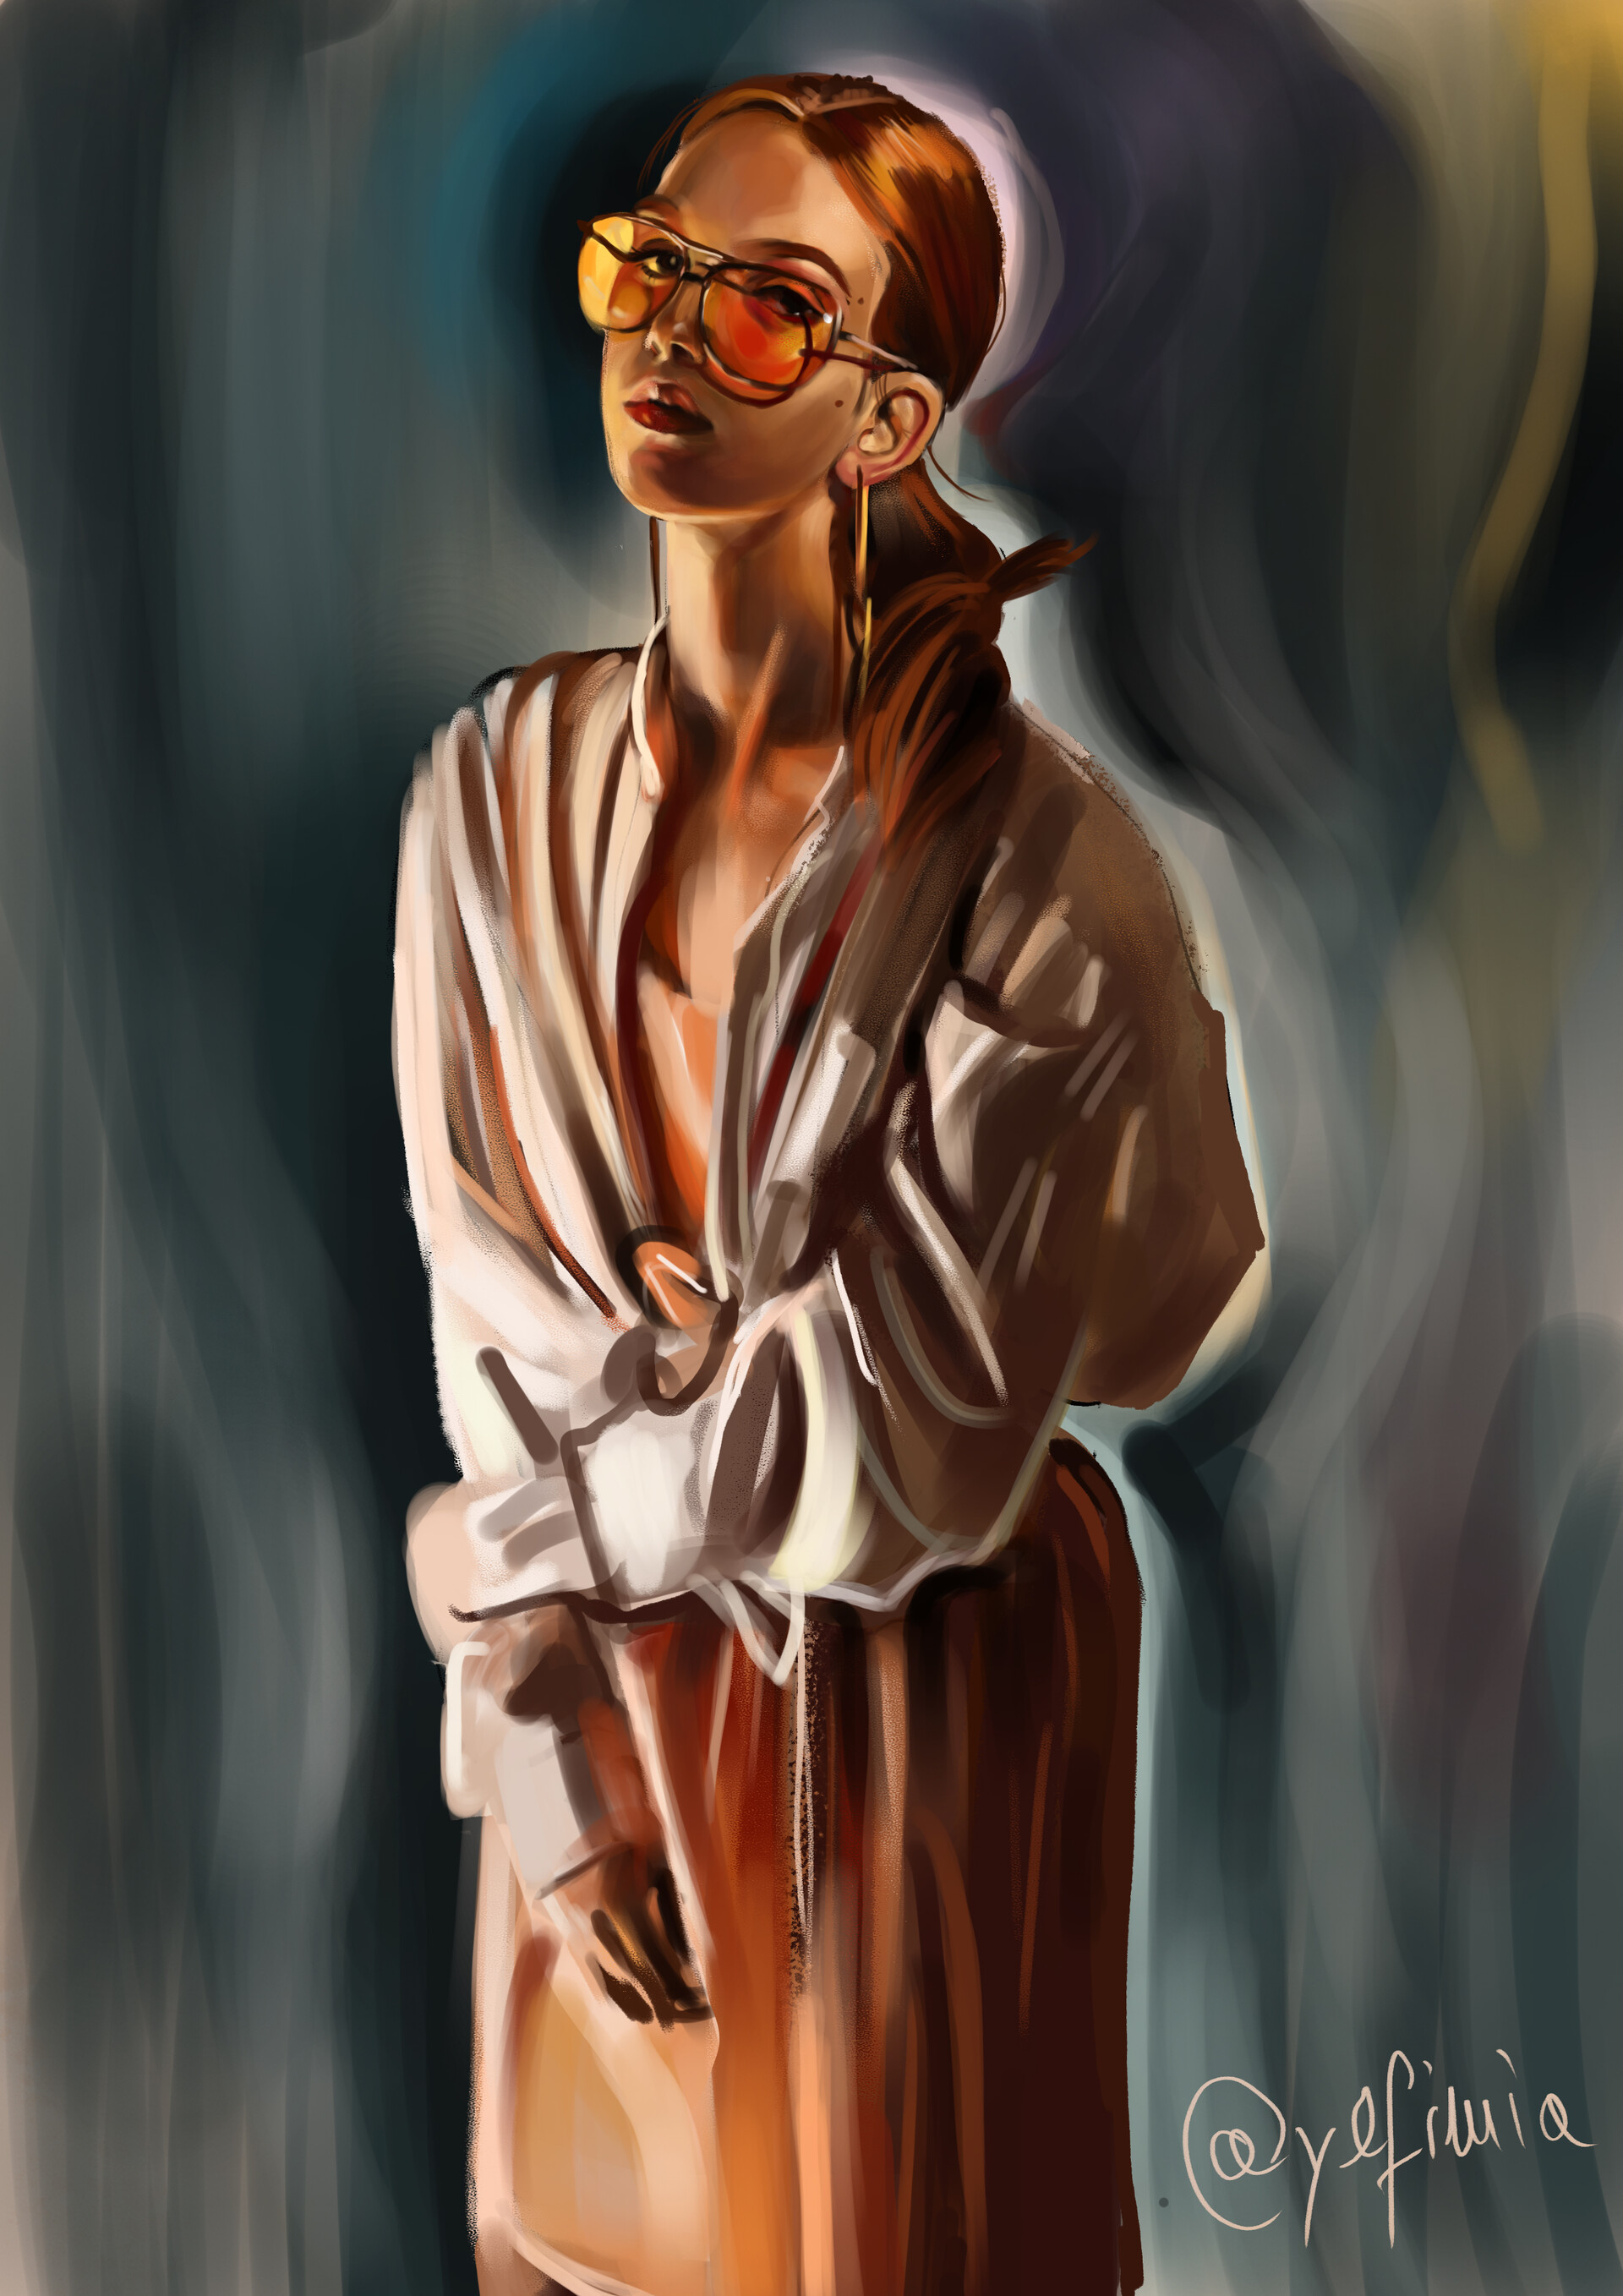 Daria schreiber photostudy orange girl sunglasses 19 06 19